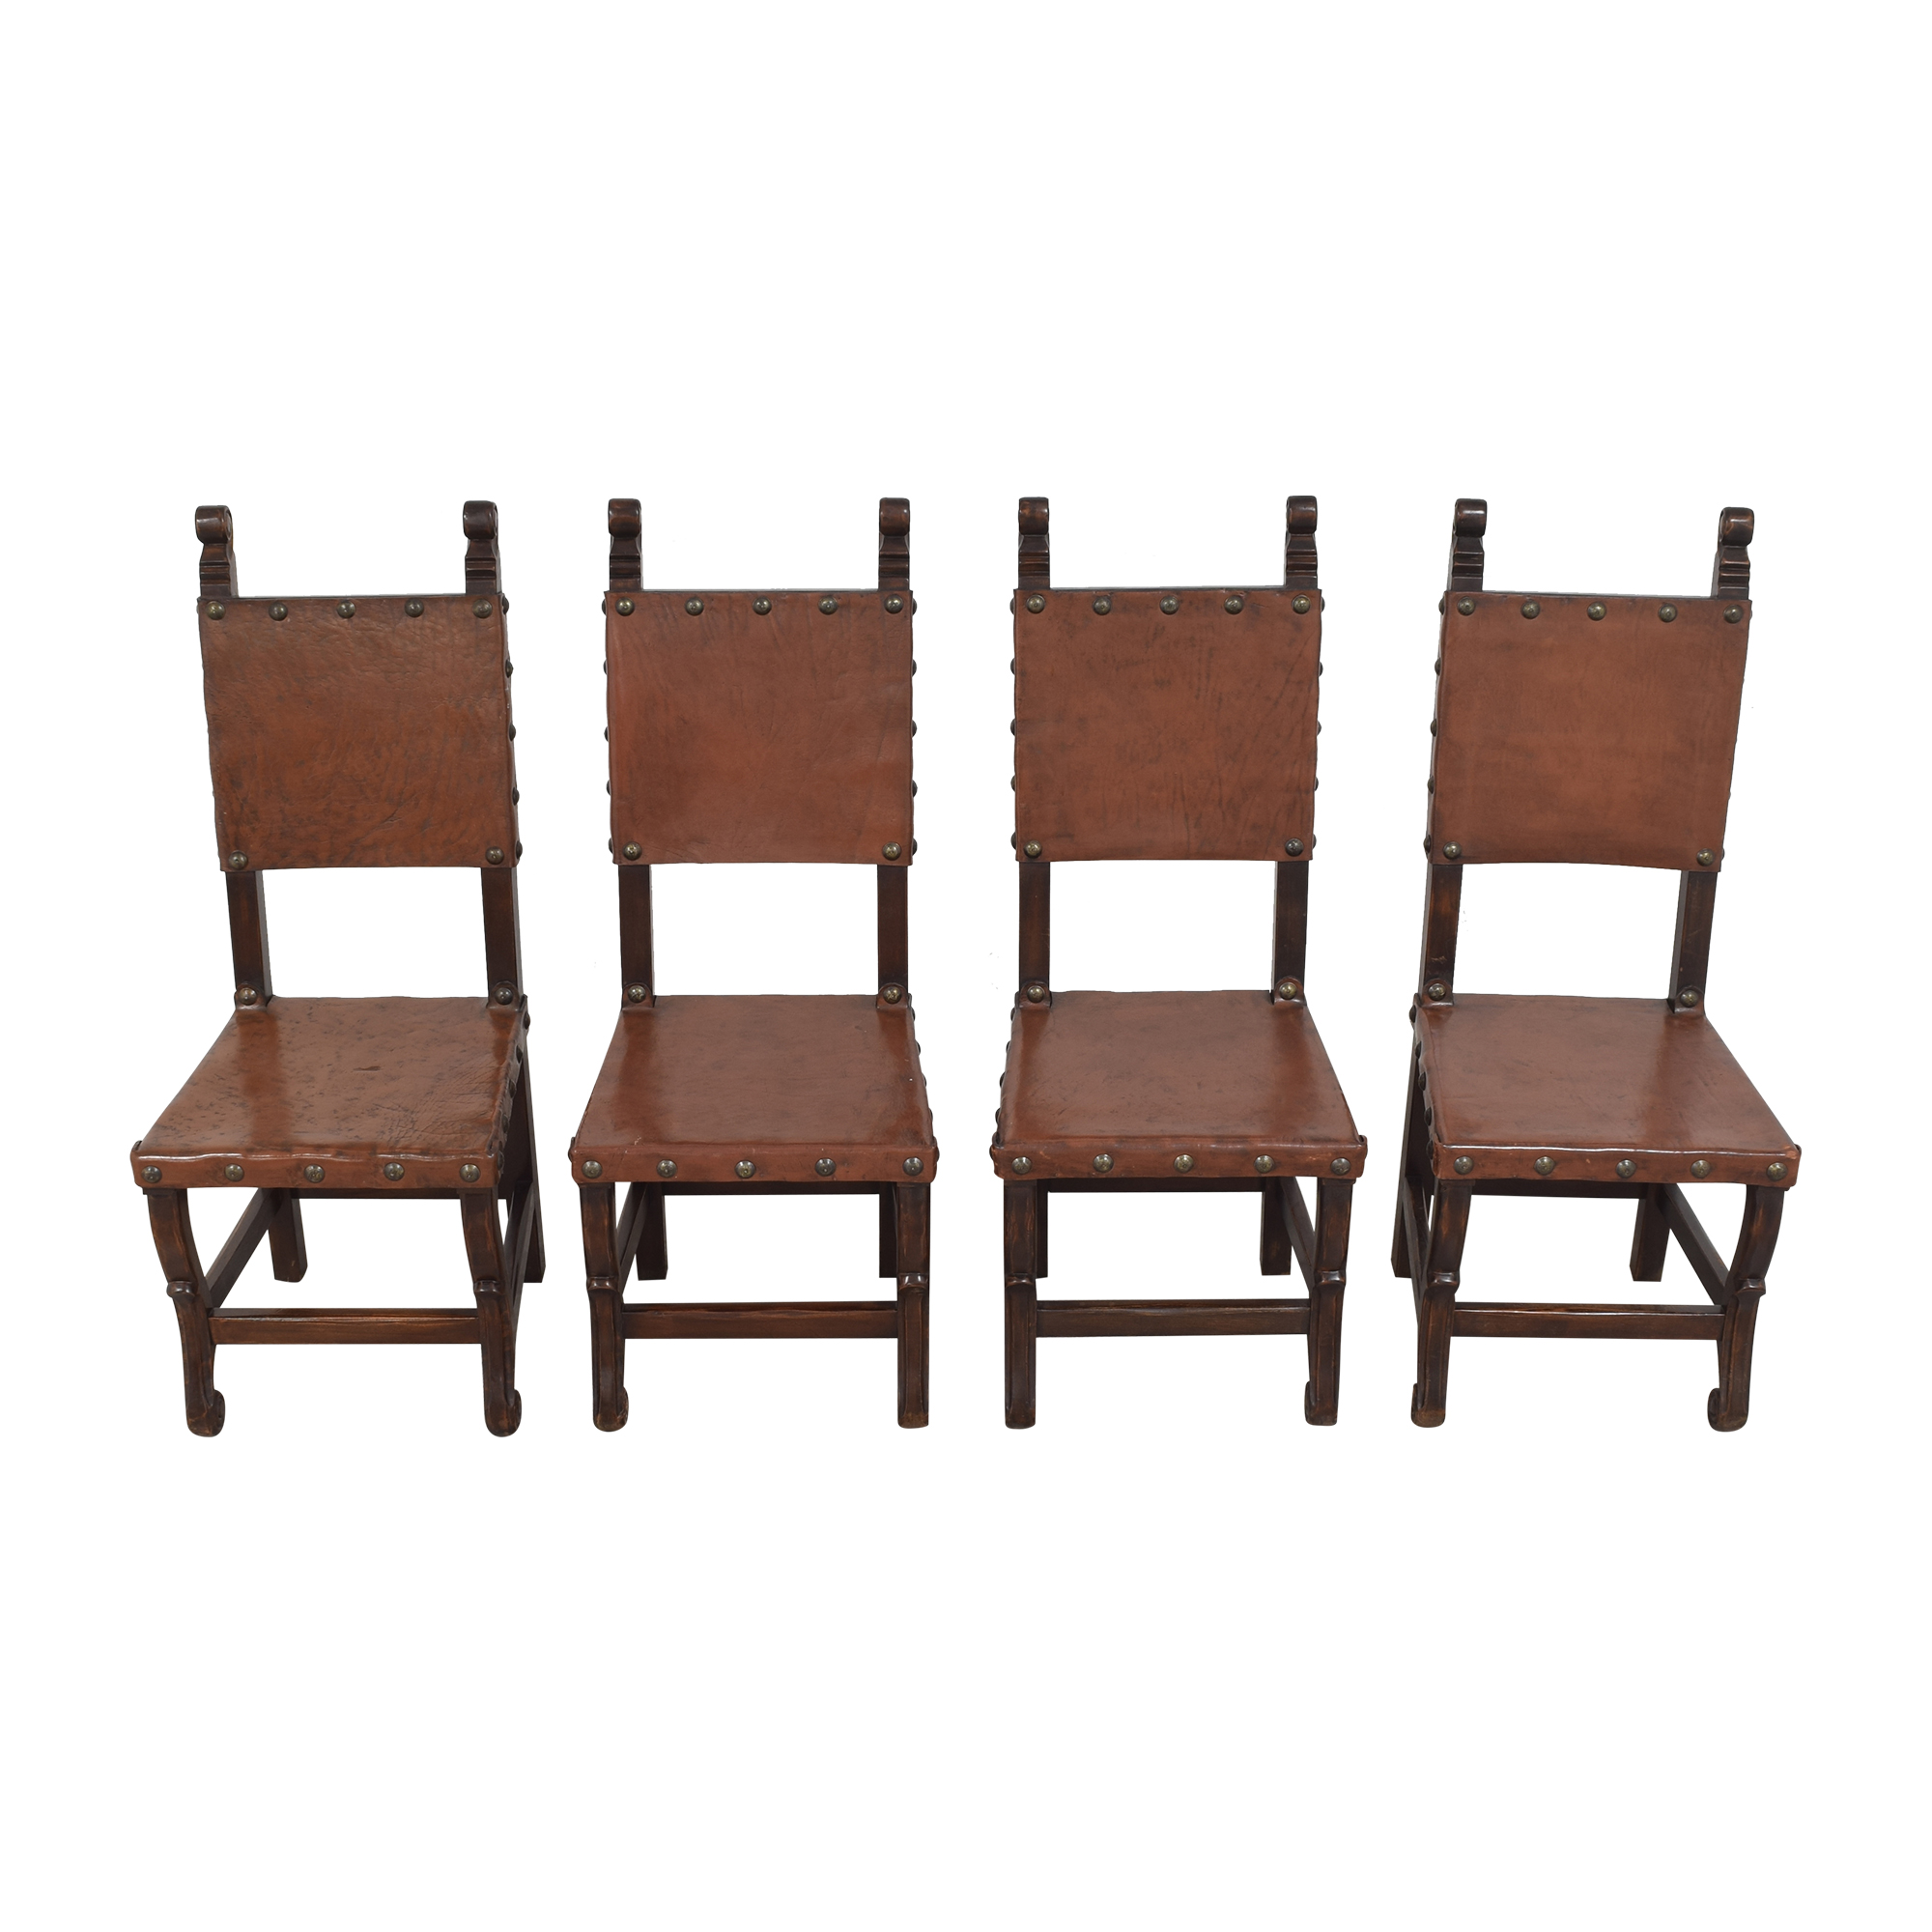 South Cone Furniture South Cone Nailhead Accented Dining Chairs nj